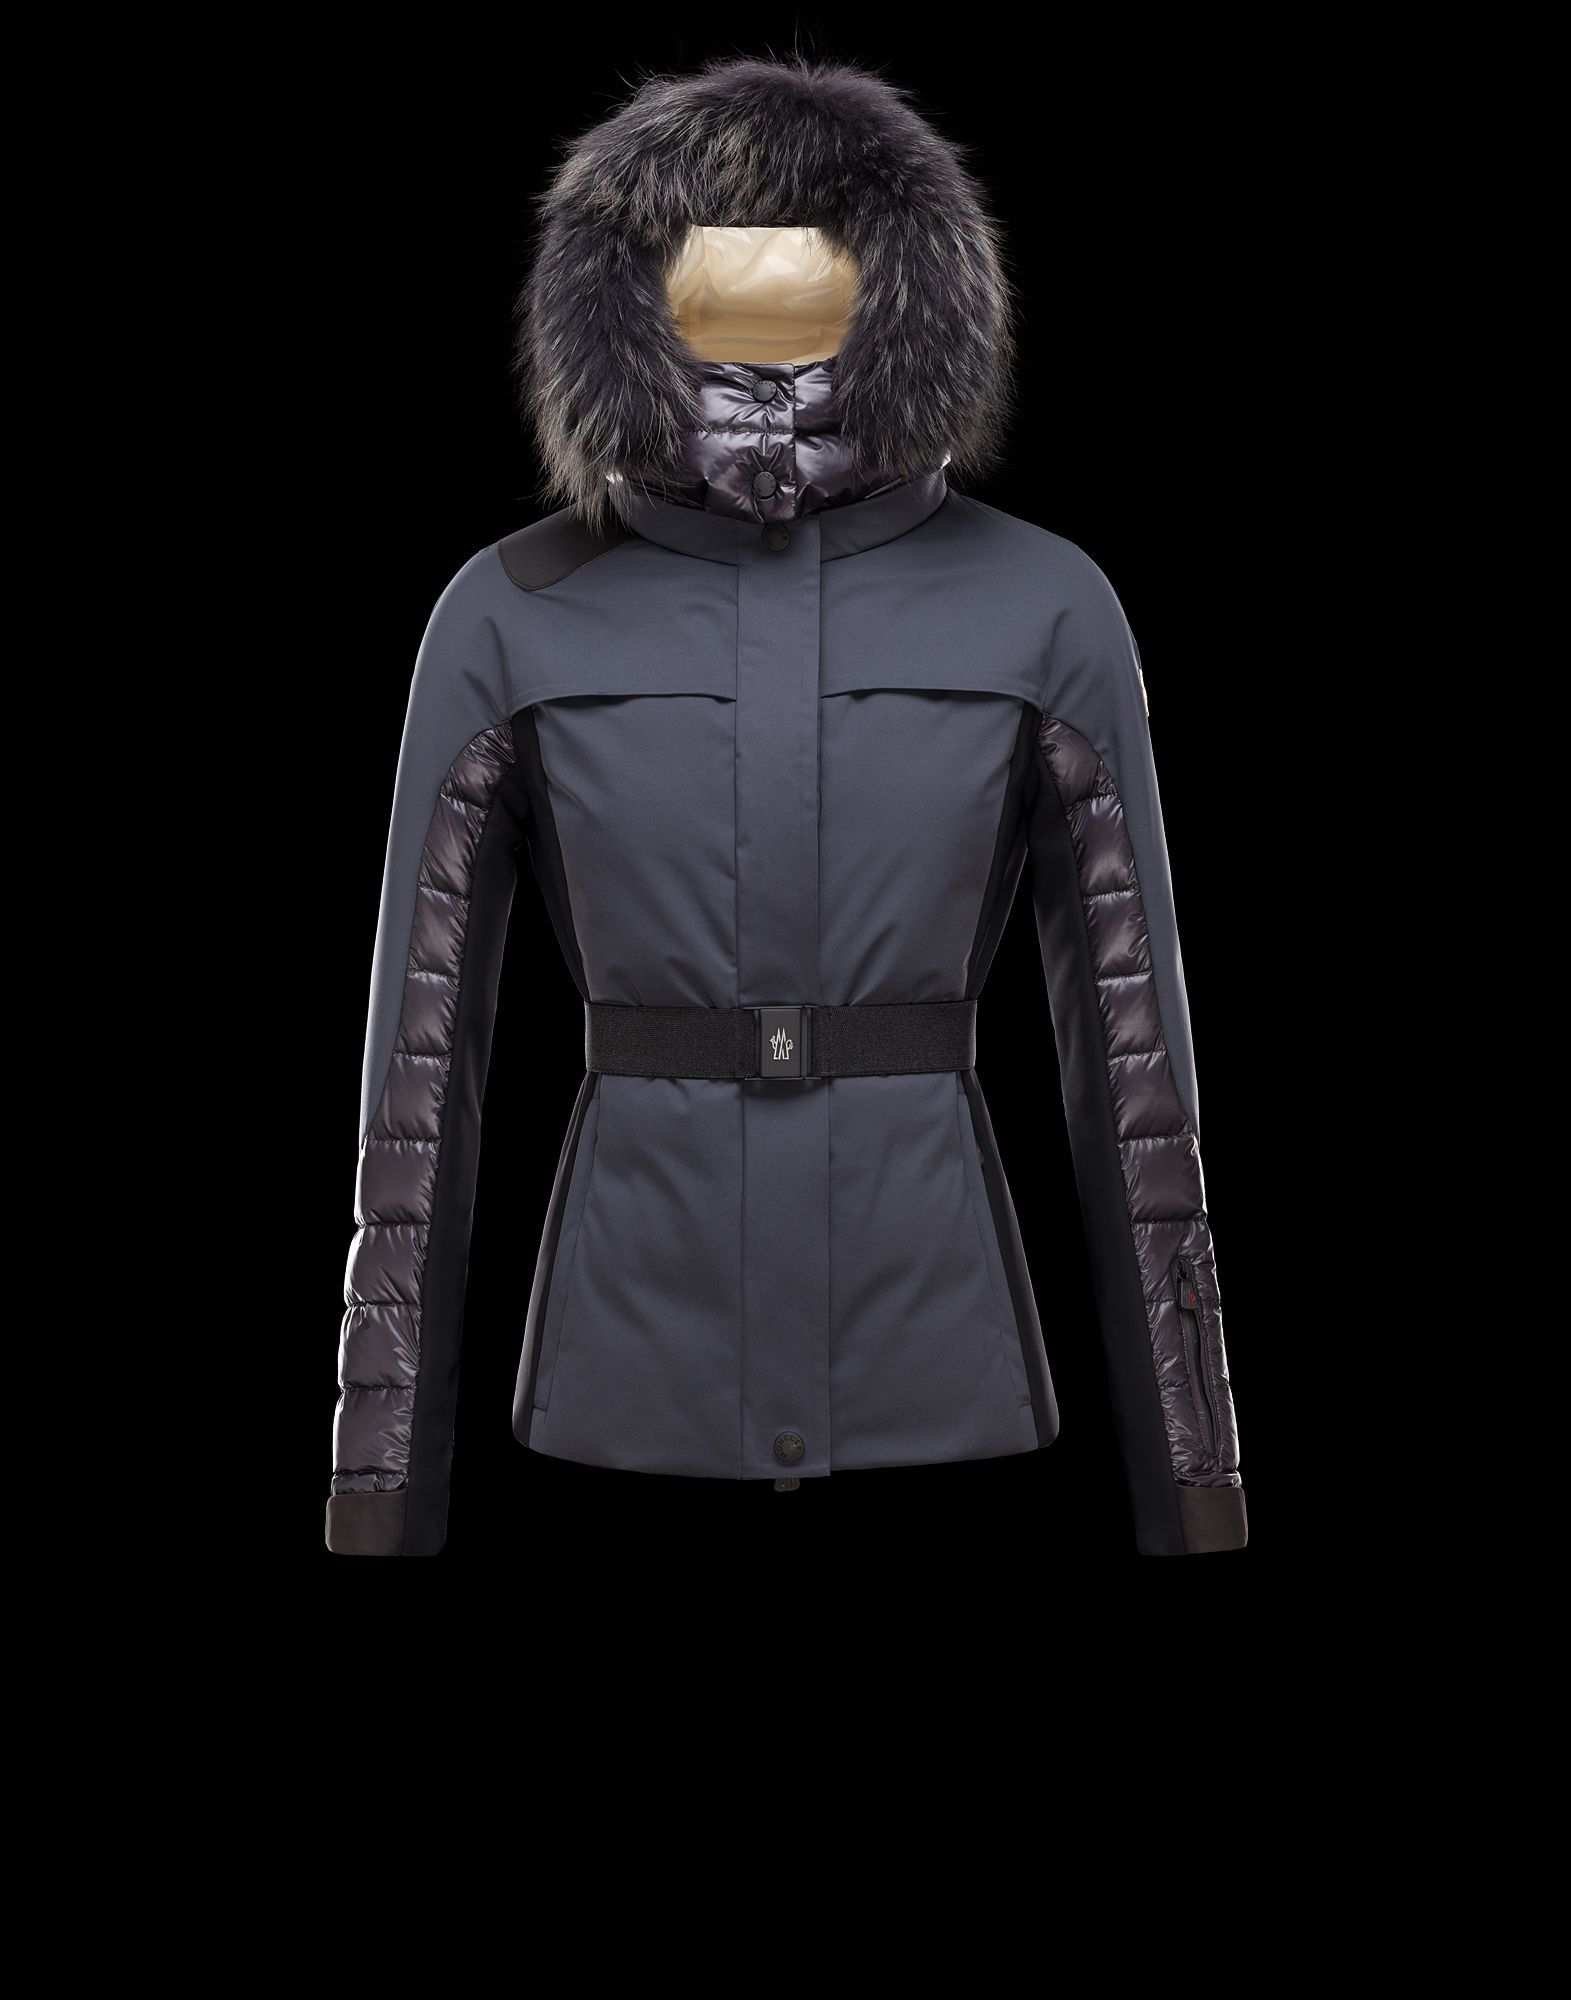 8dae56637 Jacket Women Moncler - Original products on store.moncler.com … | i ...